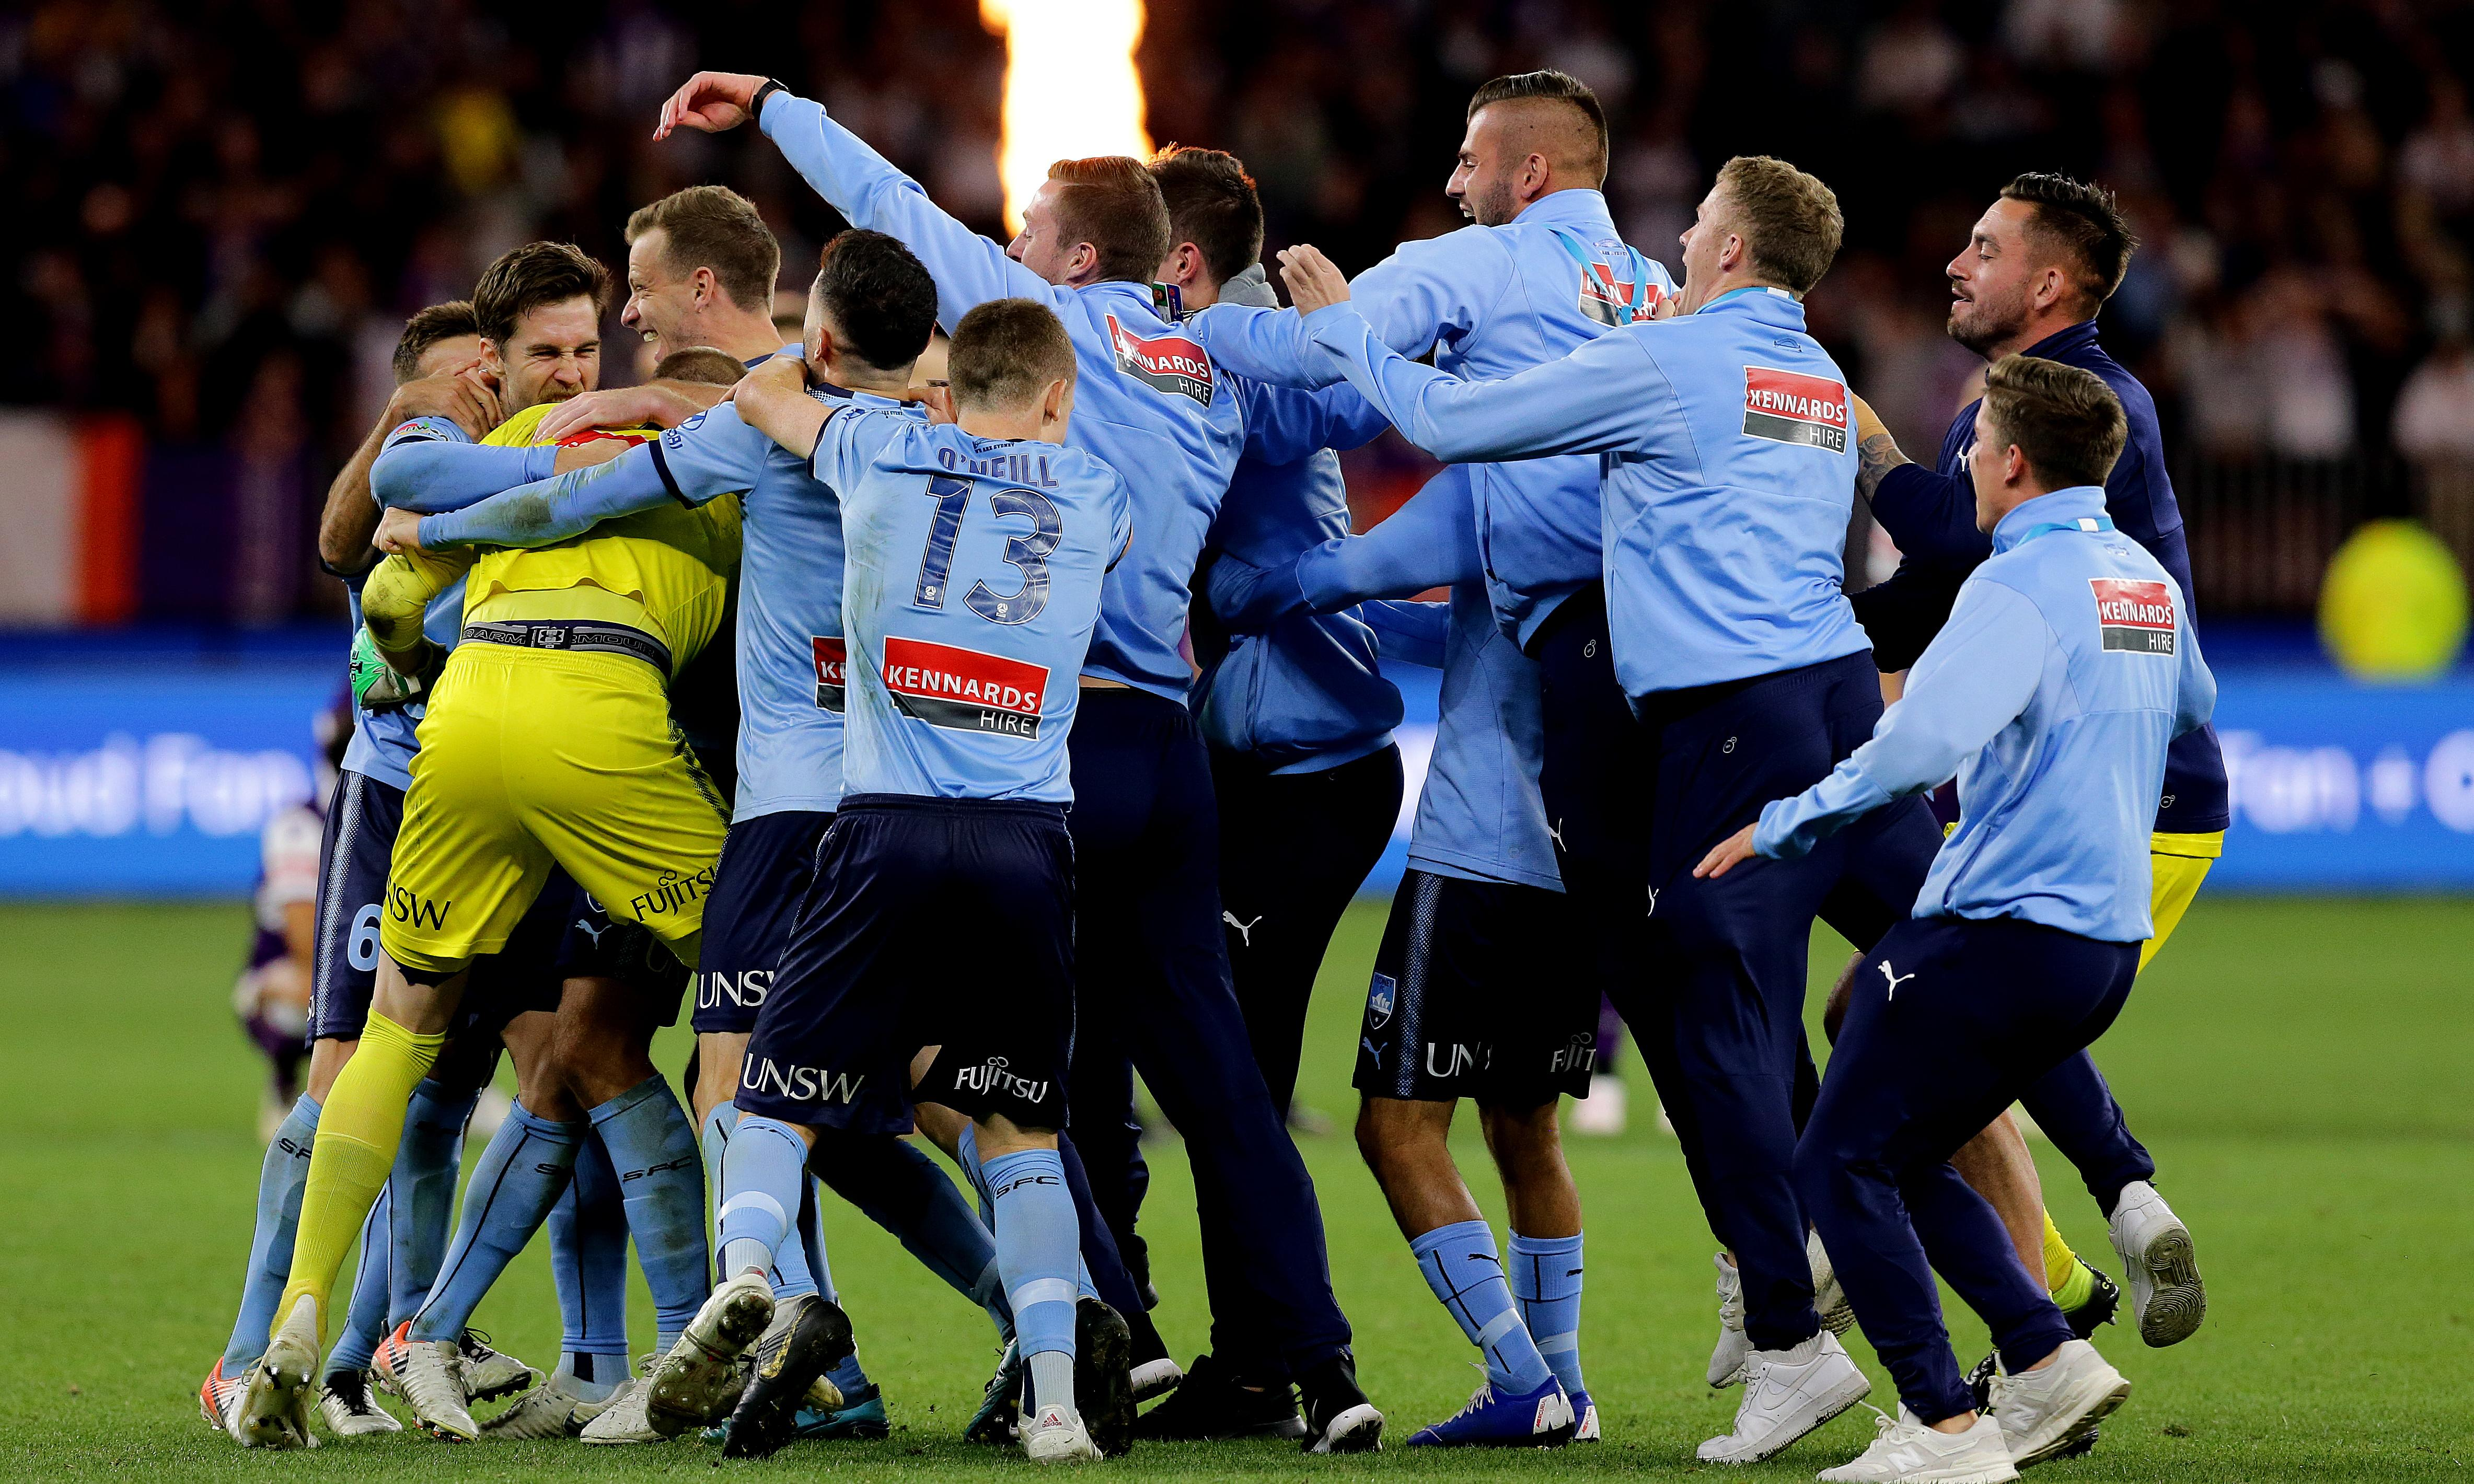 Sydney FC crowned A-League champions for fourth time after shootout win in Perth